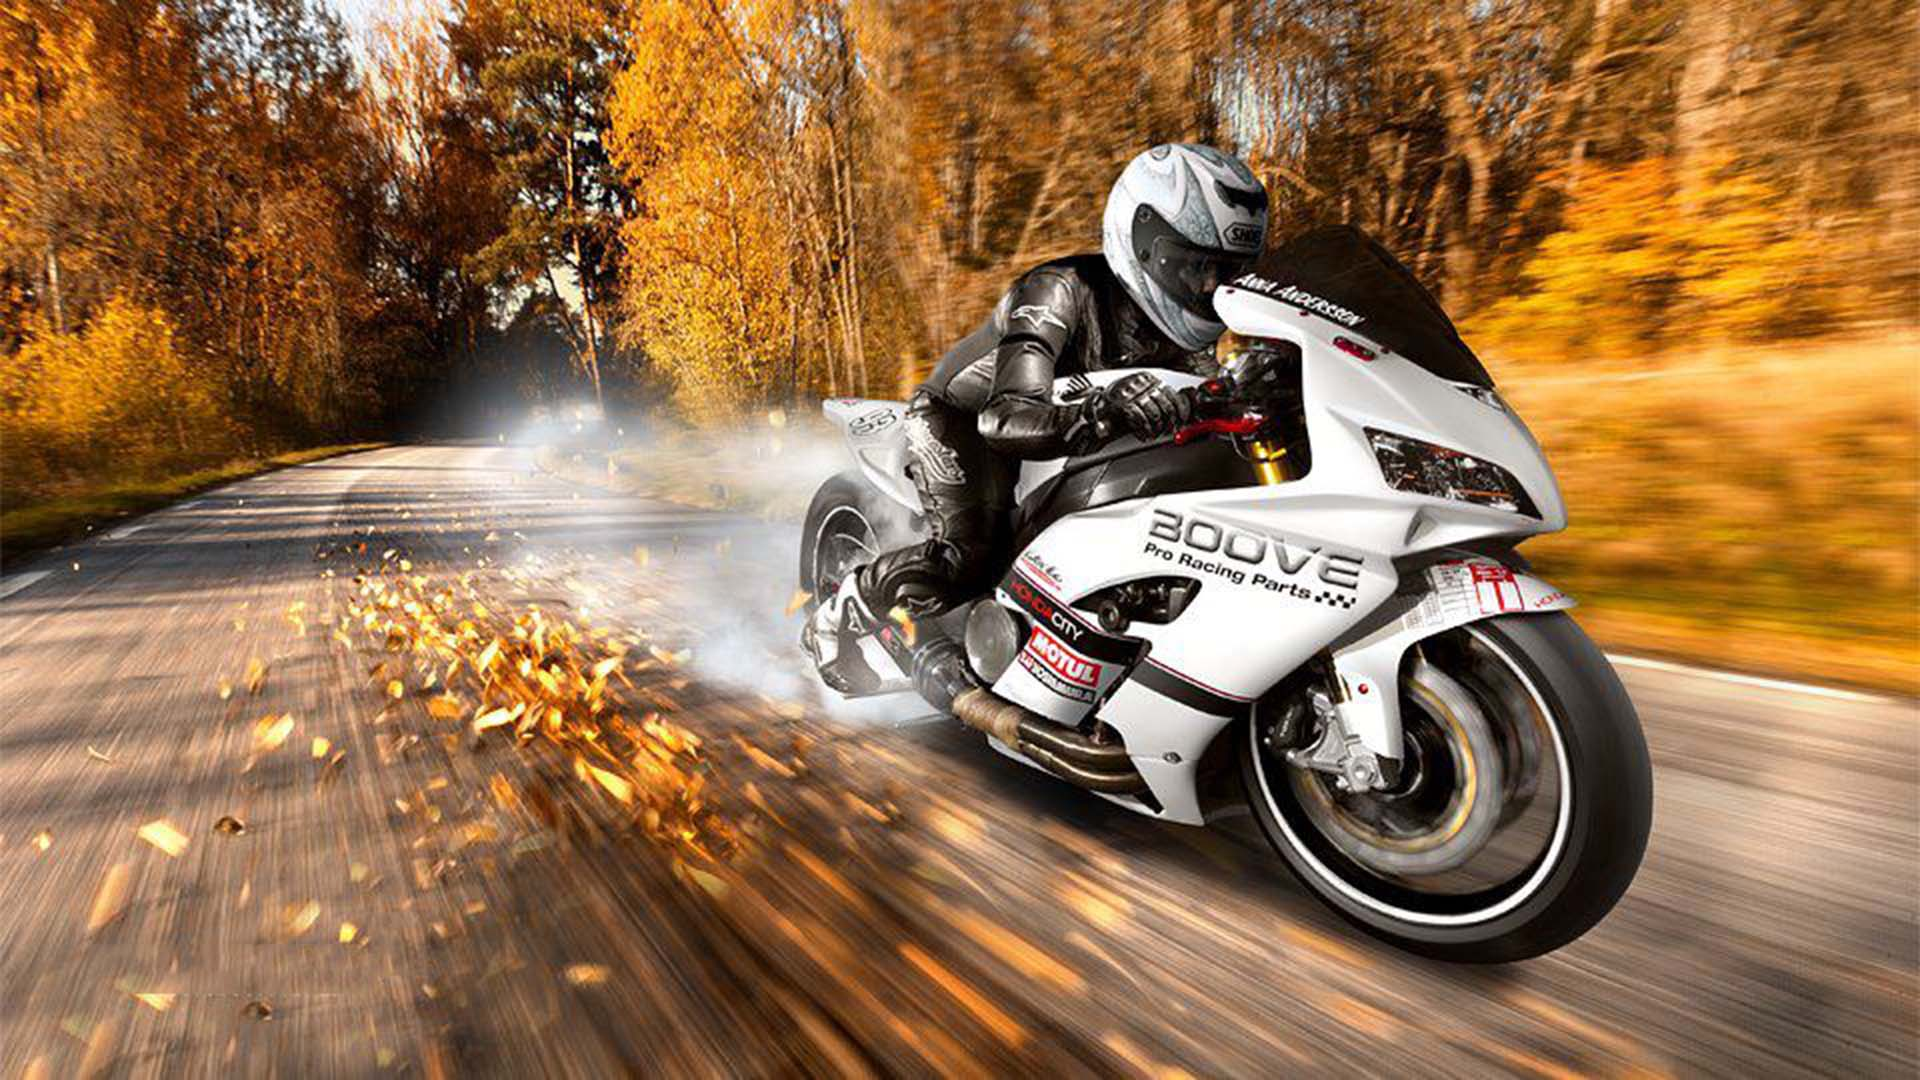 motocicletta honda wallpaper hd